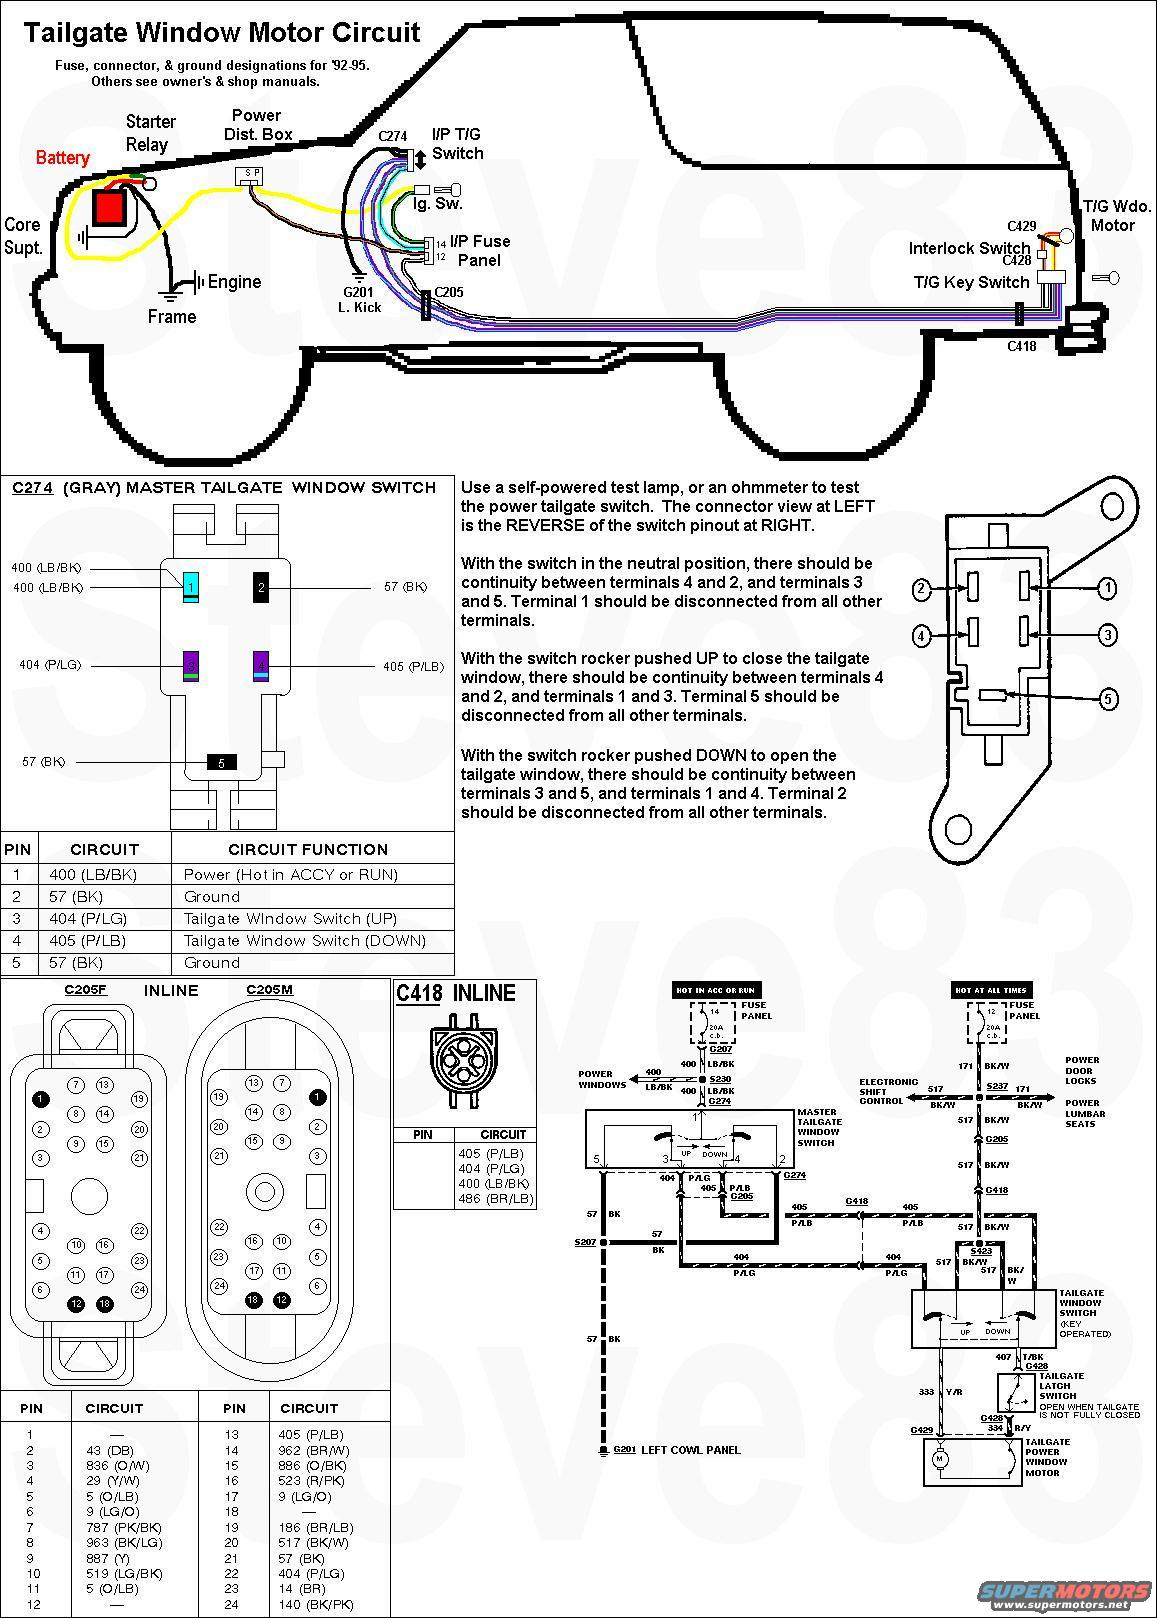 tailgate diagram 2001 ford bronco preservation part 2 too fat guys 89 ford bronco stereo wiring diagram at n-0.co